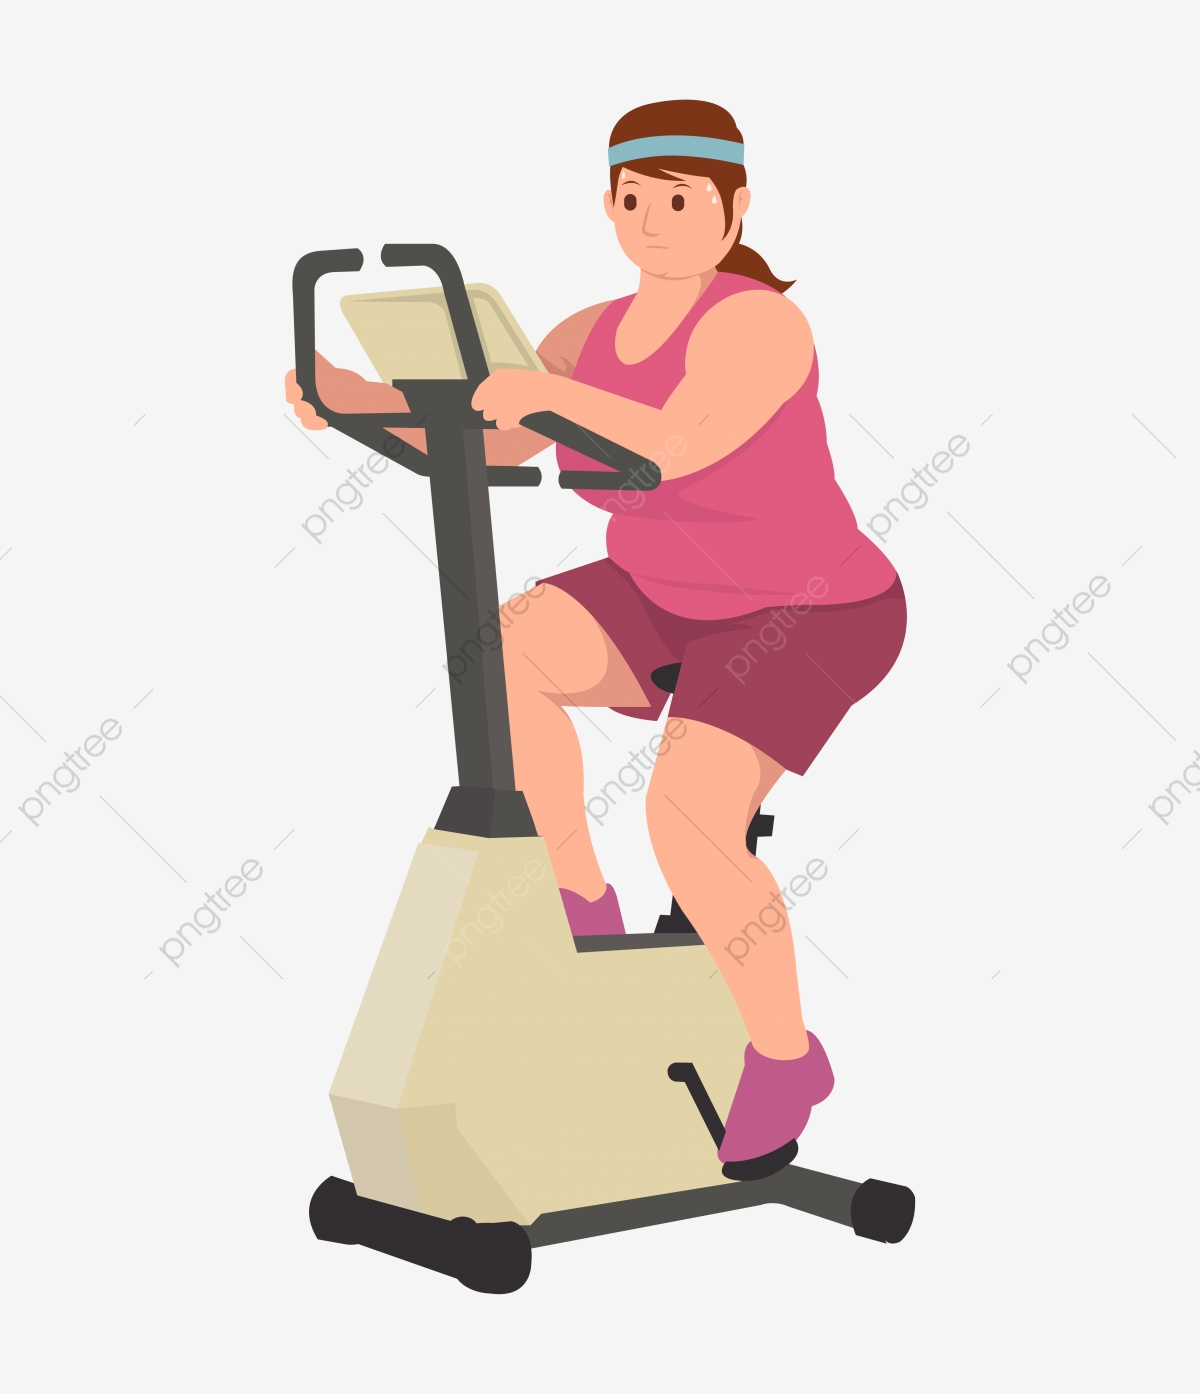 Cartoon vector illustration interior fitness room with separated